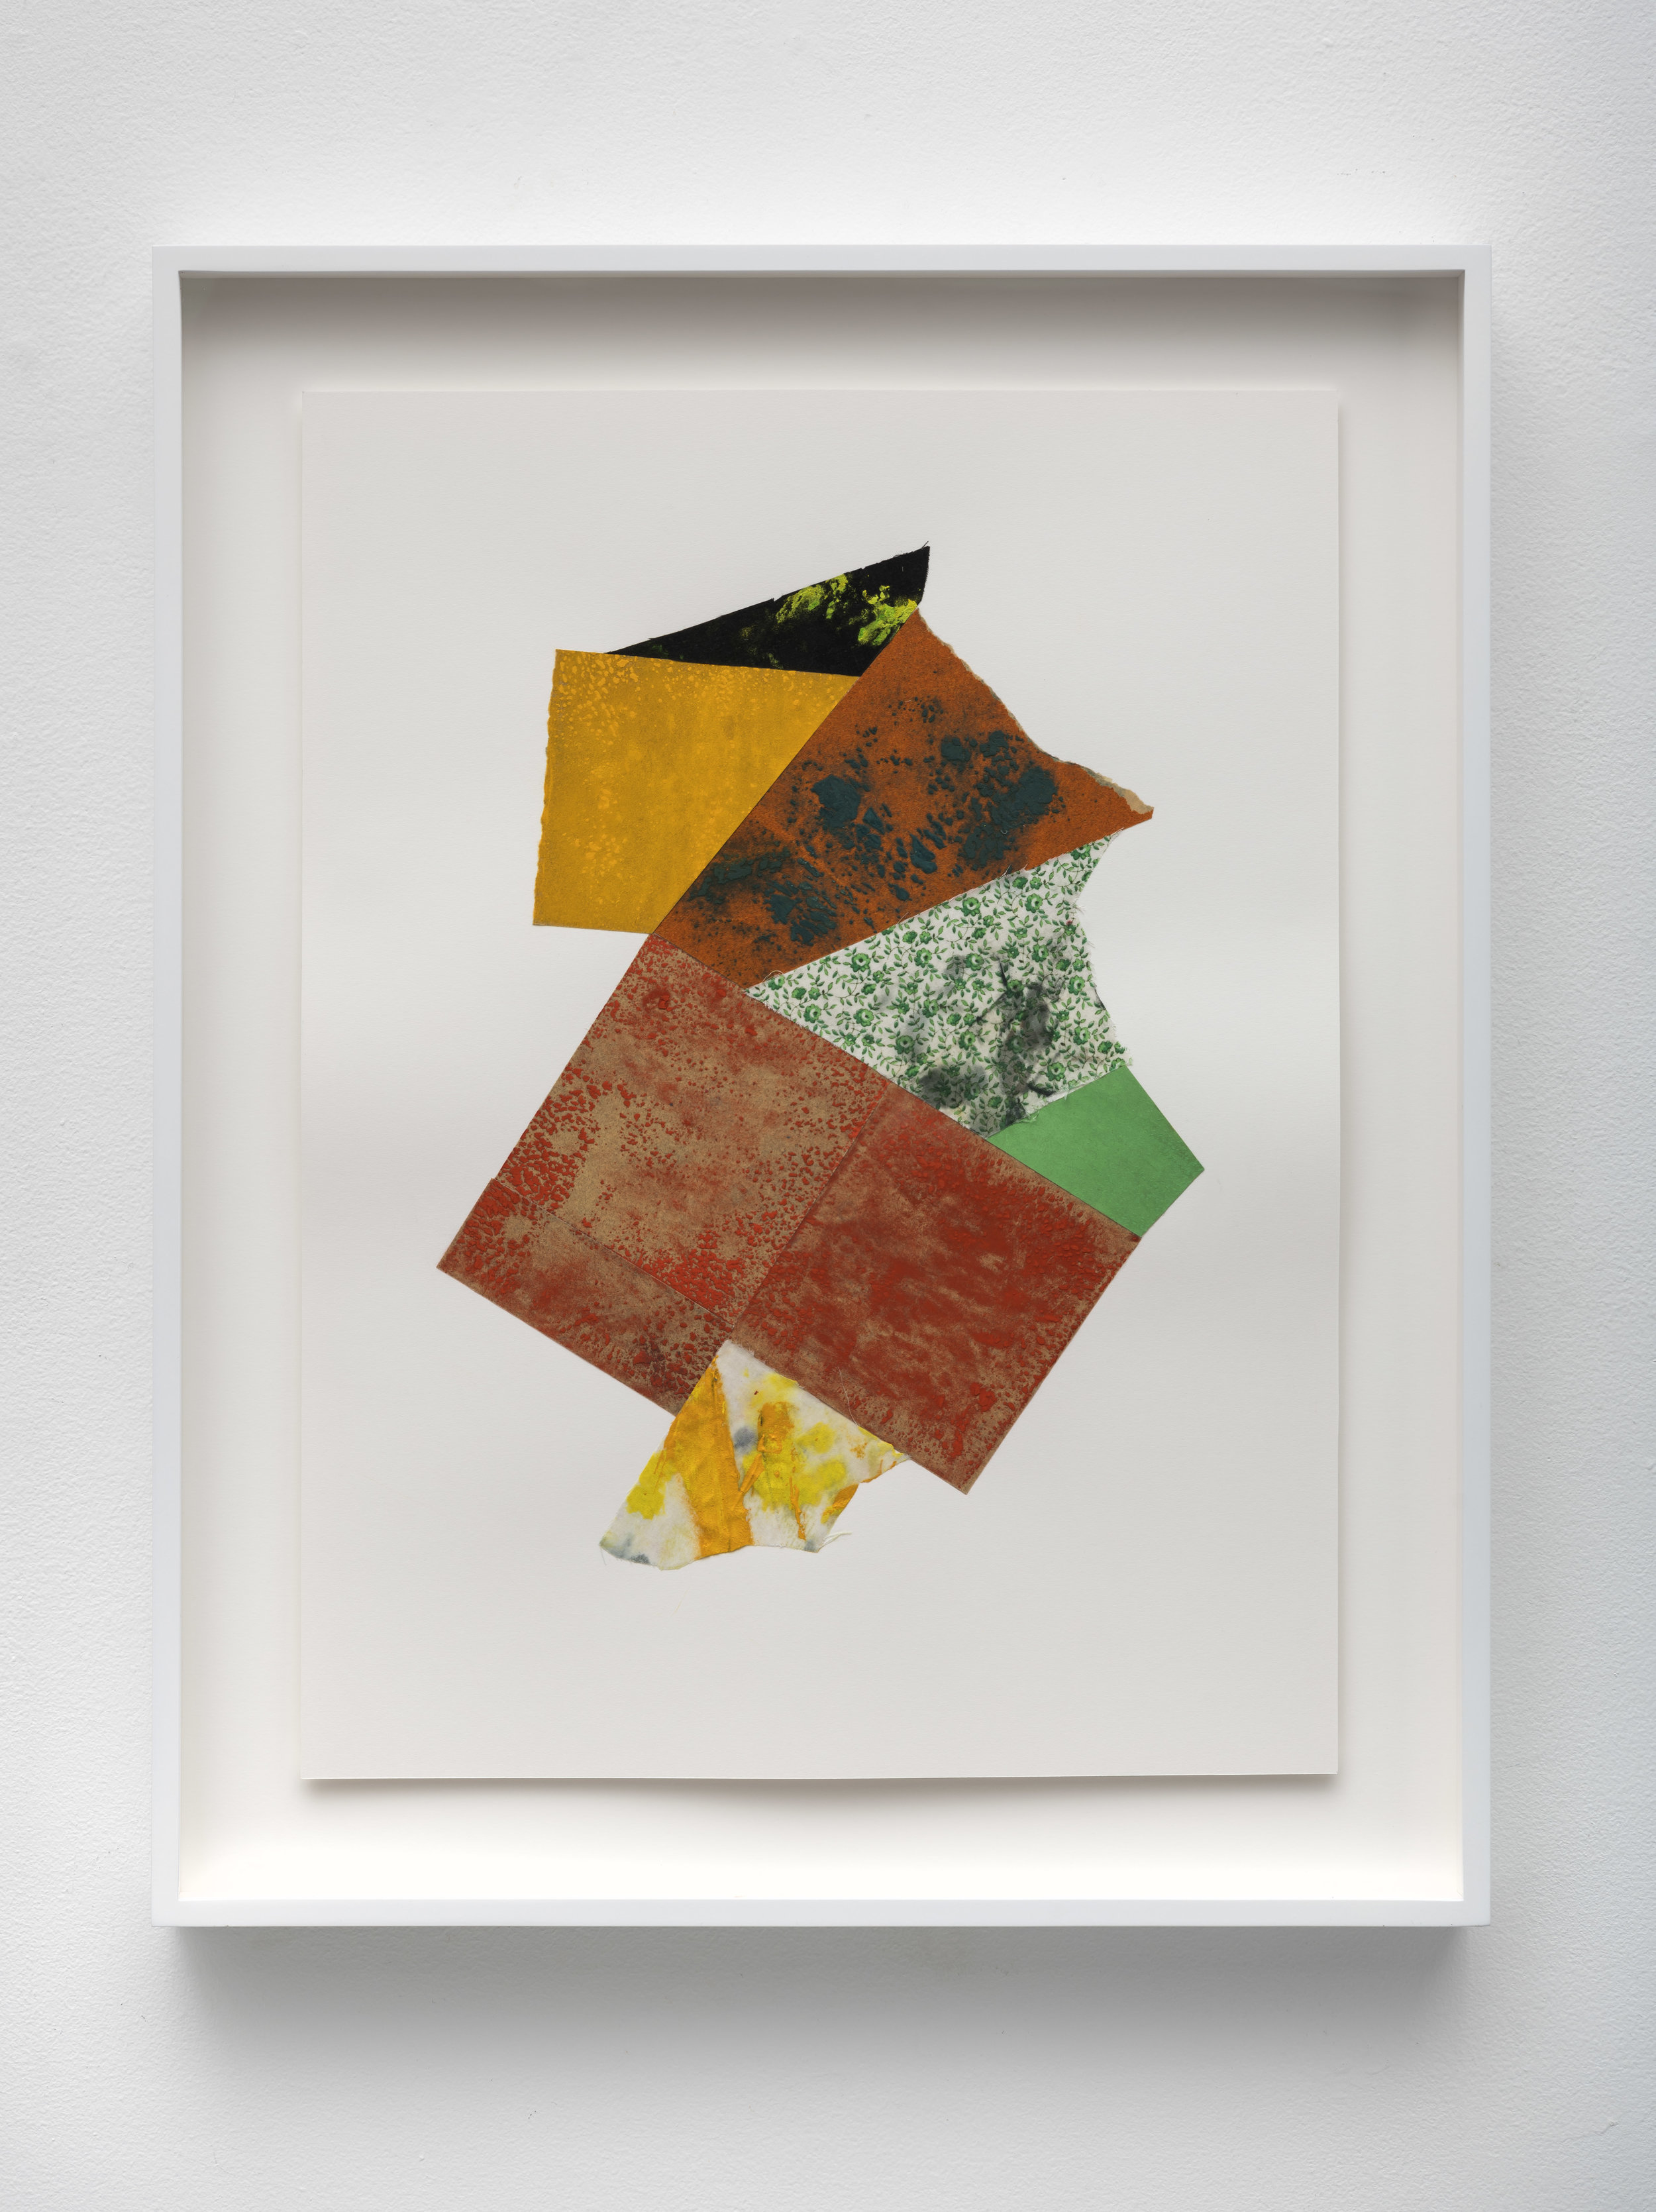 Structure V , 2019  sandpaper and dried pigment/painting rags on board 20 x 15 inches; 50.8 x 38.1 centimeters  $3,500.00